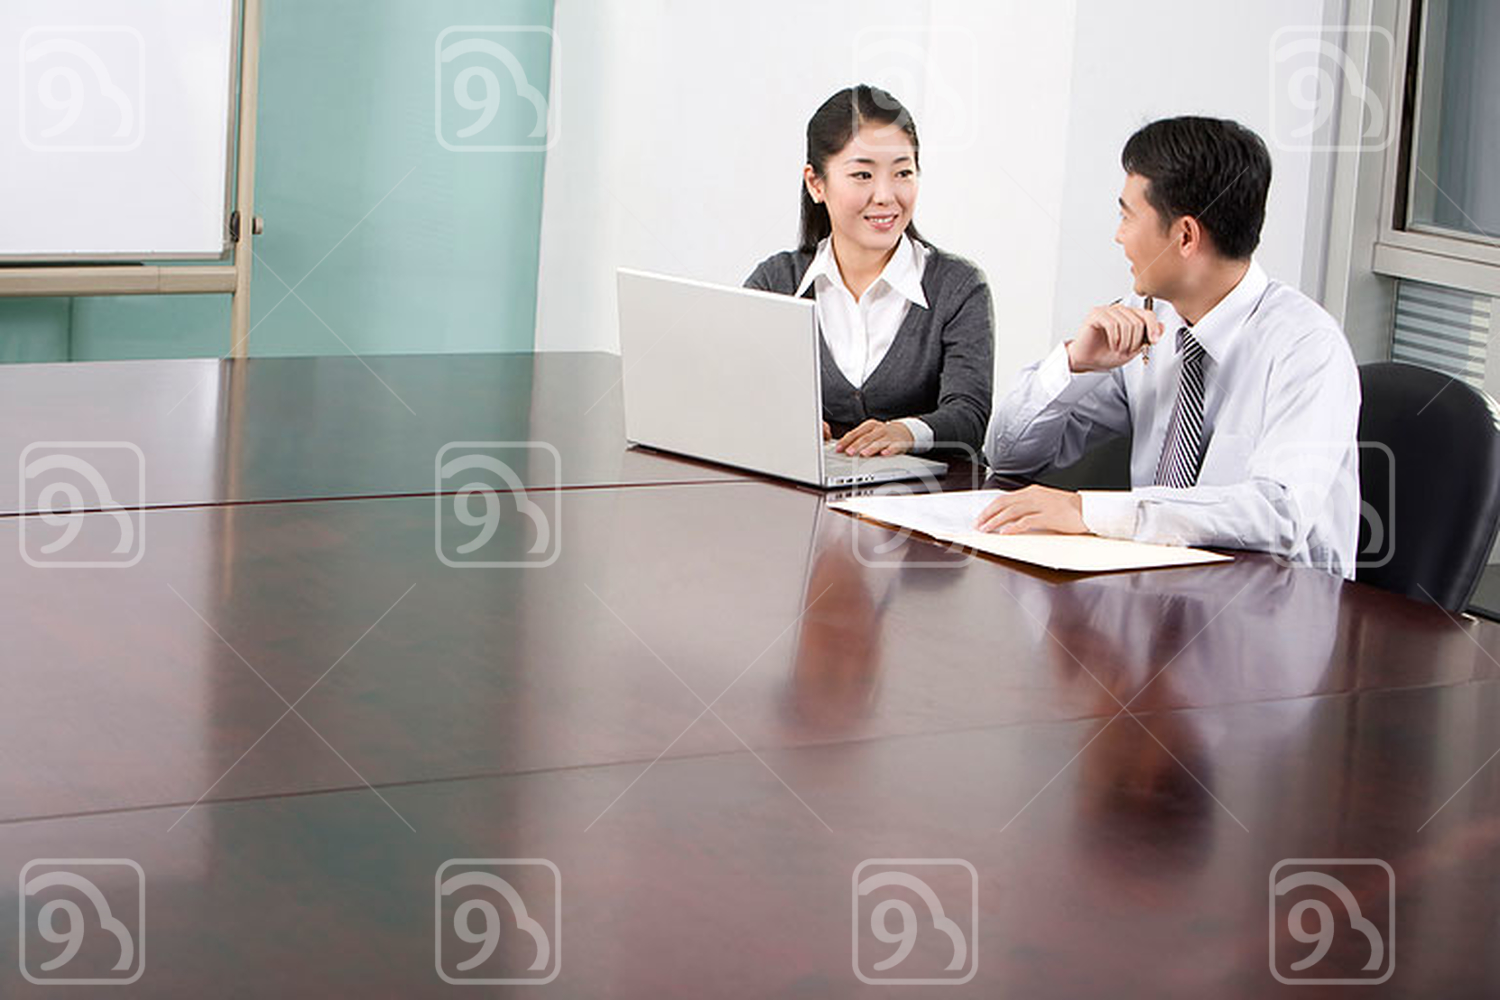 Chinese office workers in the conference room